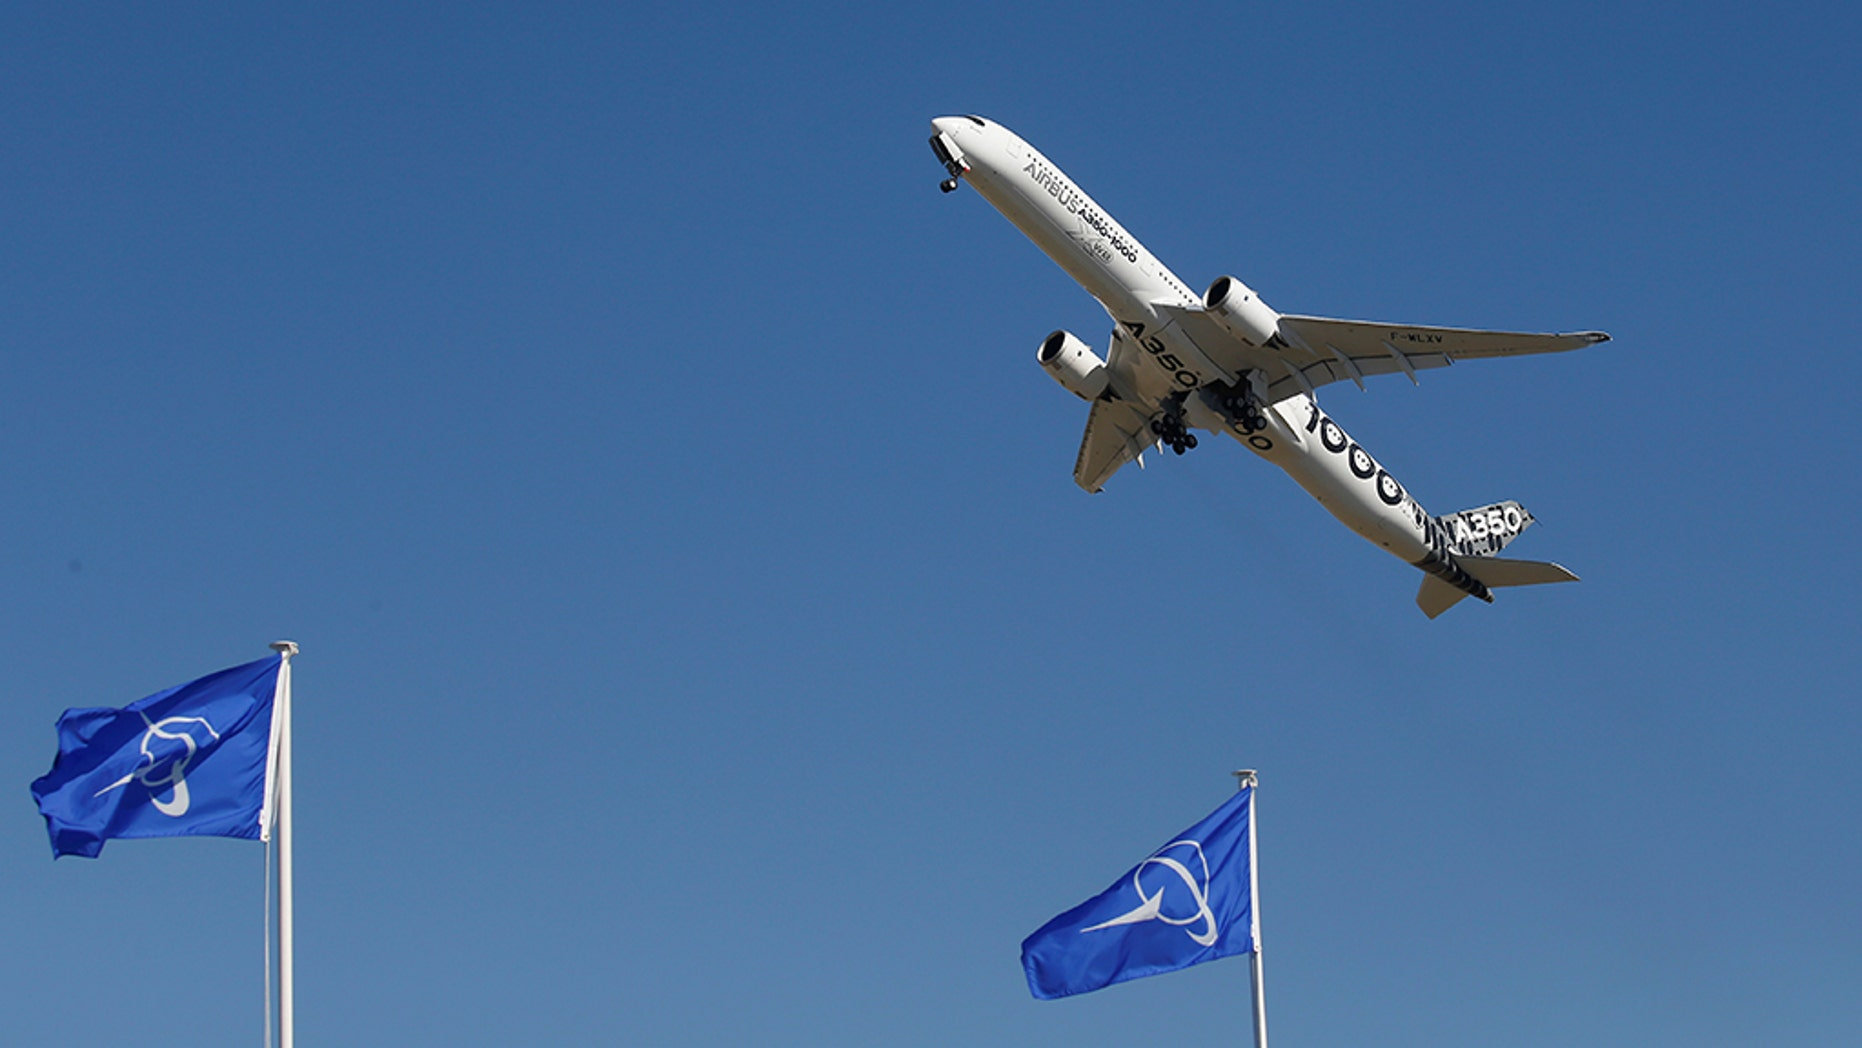 An Airbus A350 wowed people with its extreme takeoff.